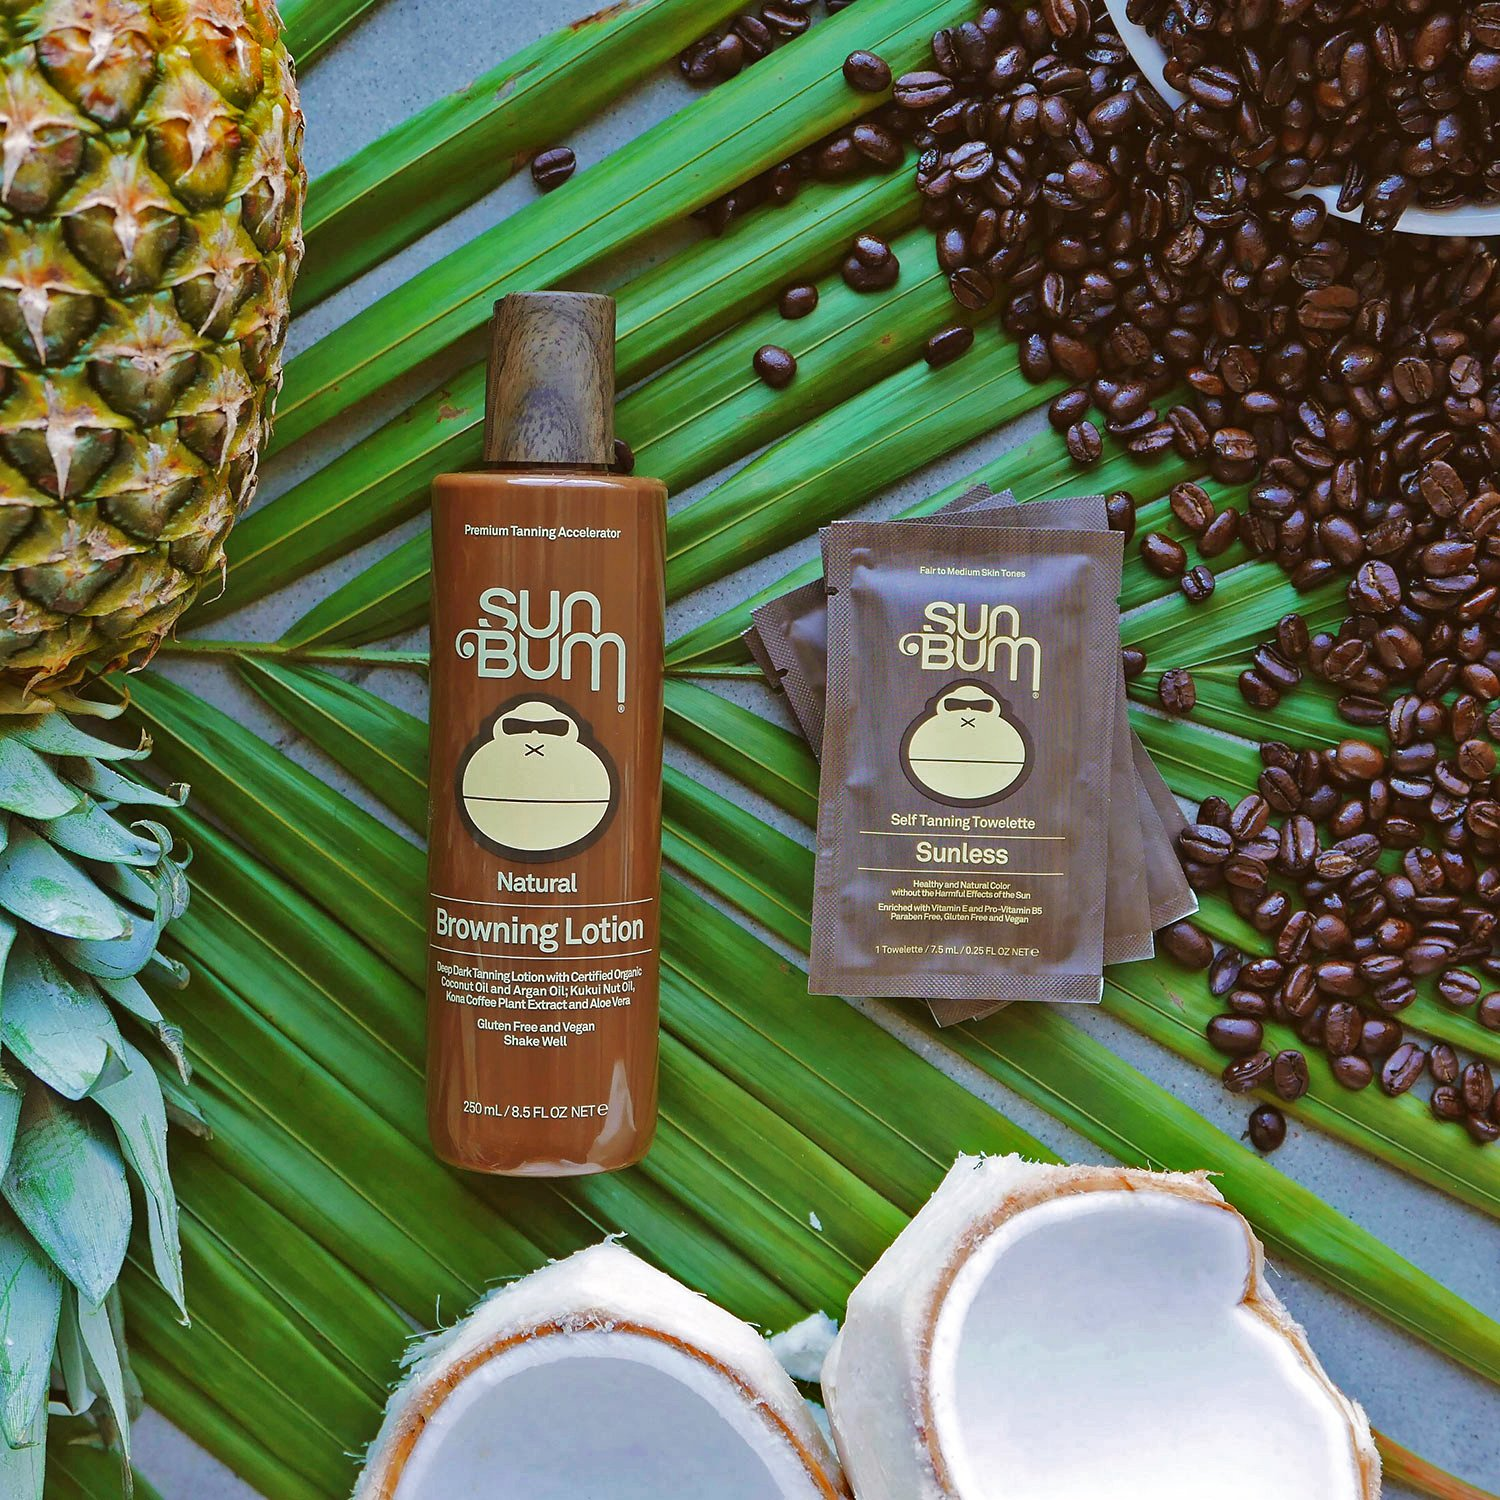 8.Sun Bum Natural Browning Lotion Dark Tanning Lotion with Organic Coconut Oil, Kona Coffee Extract and Aloe Vera